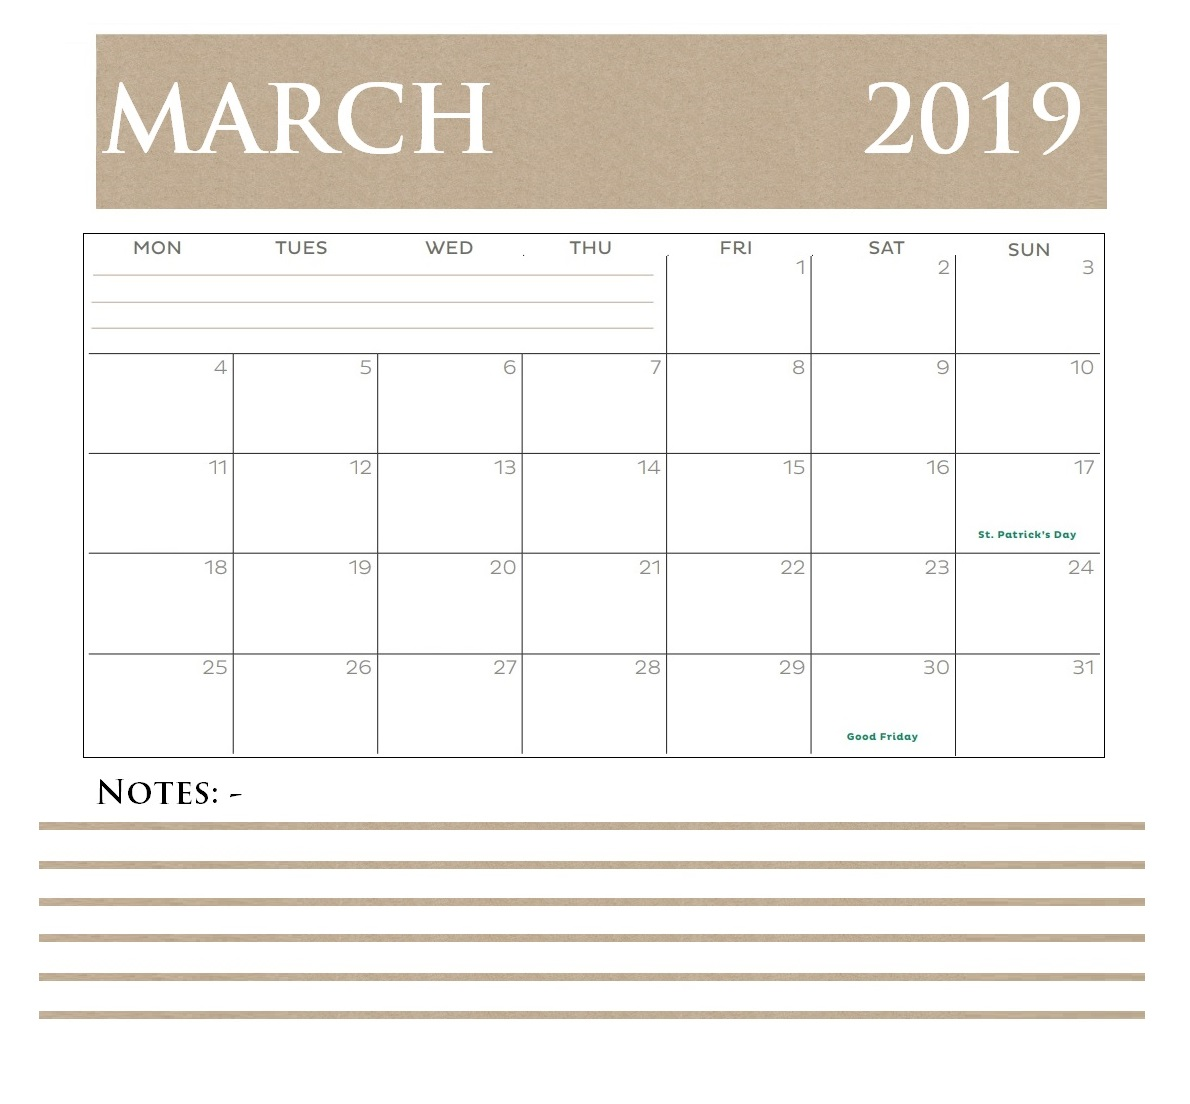 March 2019 Personalized Calendar Template